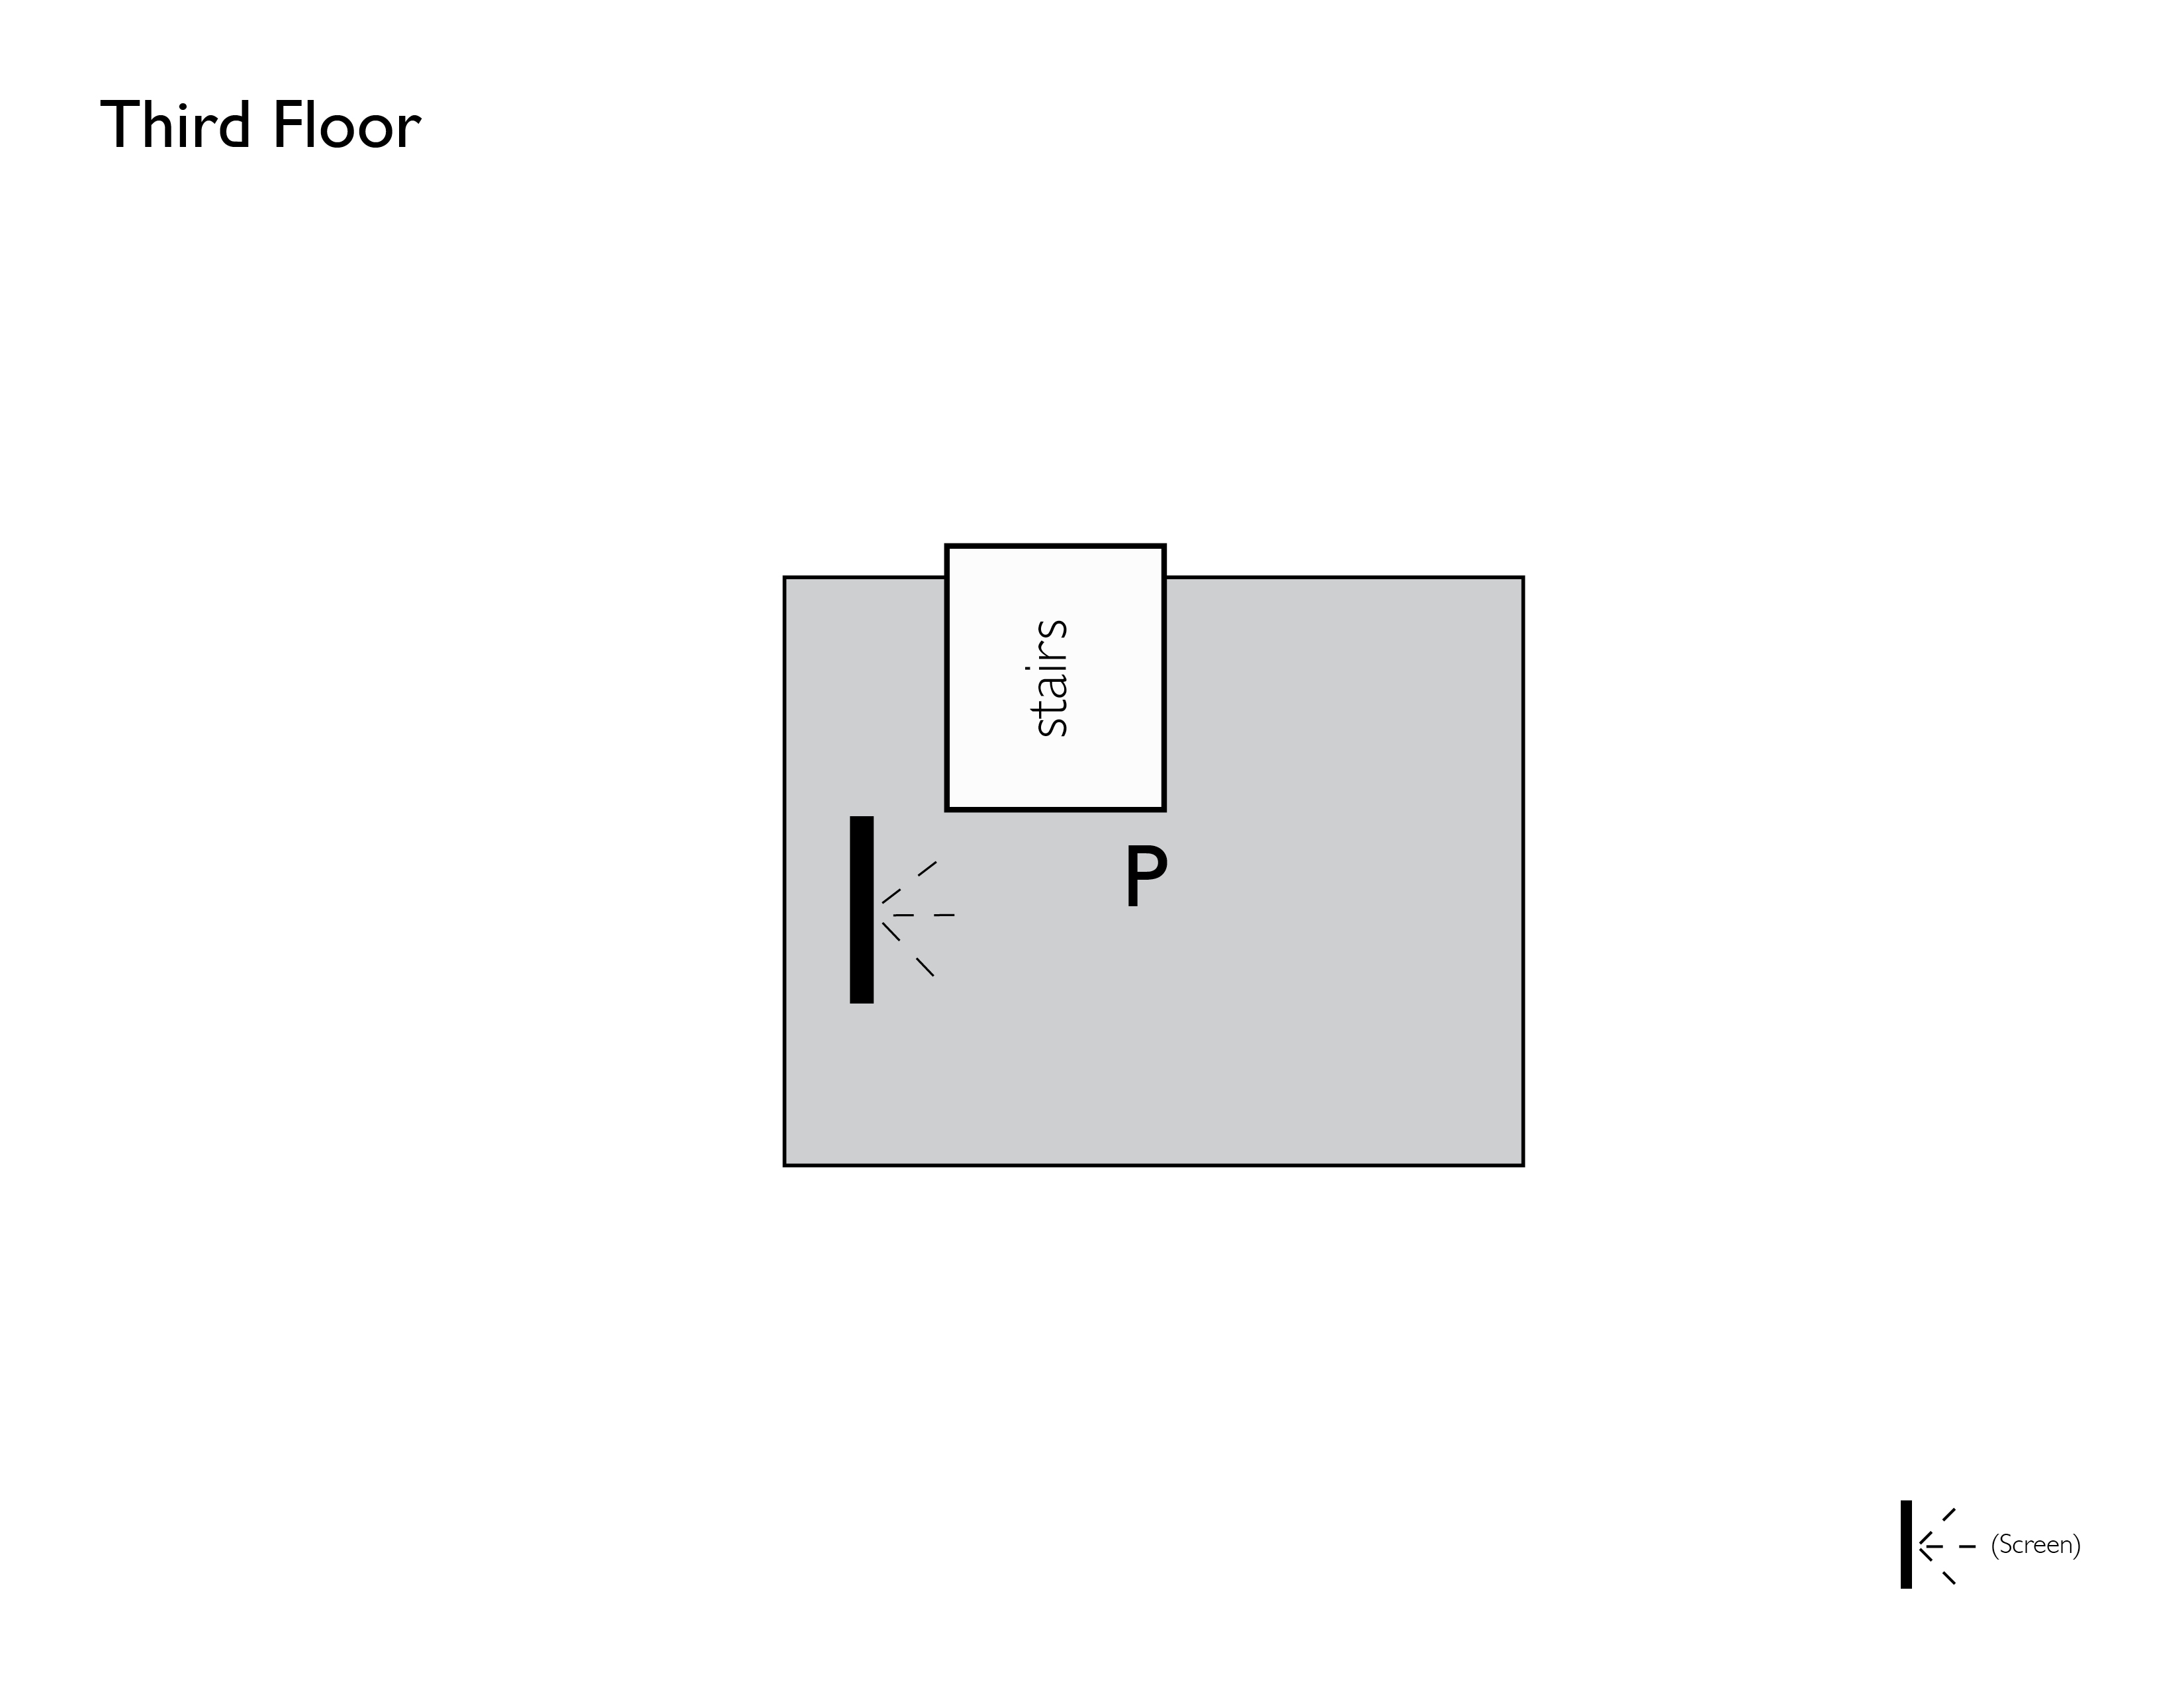 Patrons' Show Seating Third Floor